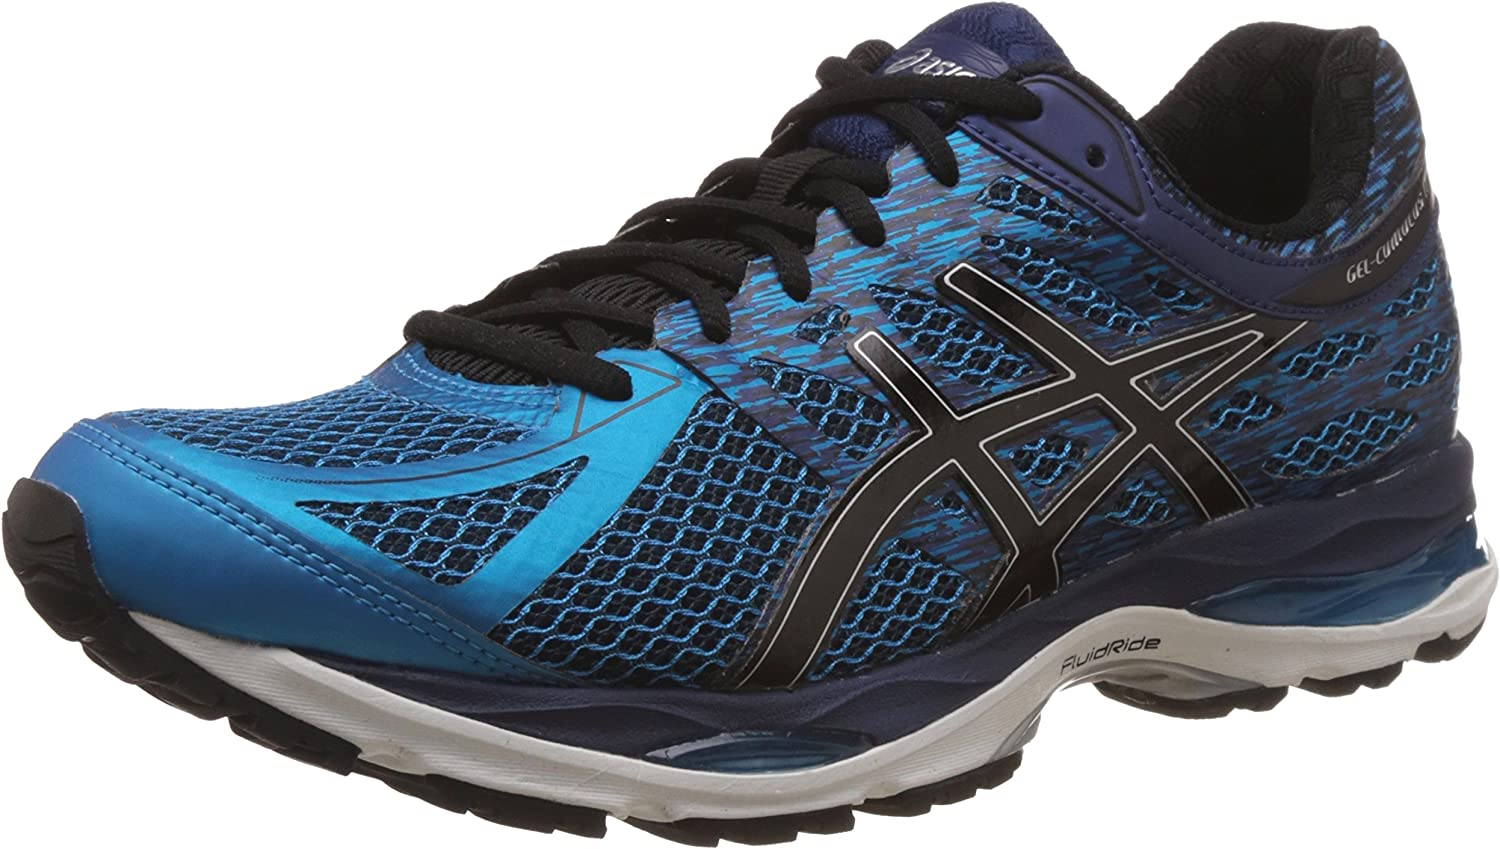 ASICS Mens Gel-Cumulus 17 Island Blue, Black and Indigo Blue Running Shoes - 8 UK/India (42.5 EU) (9 US): Amazon.es: Zapatos y complementos